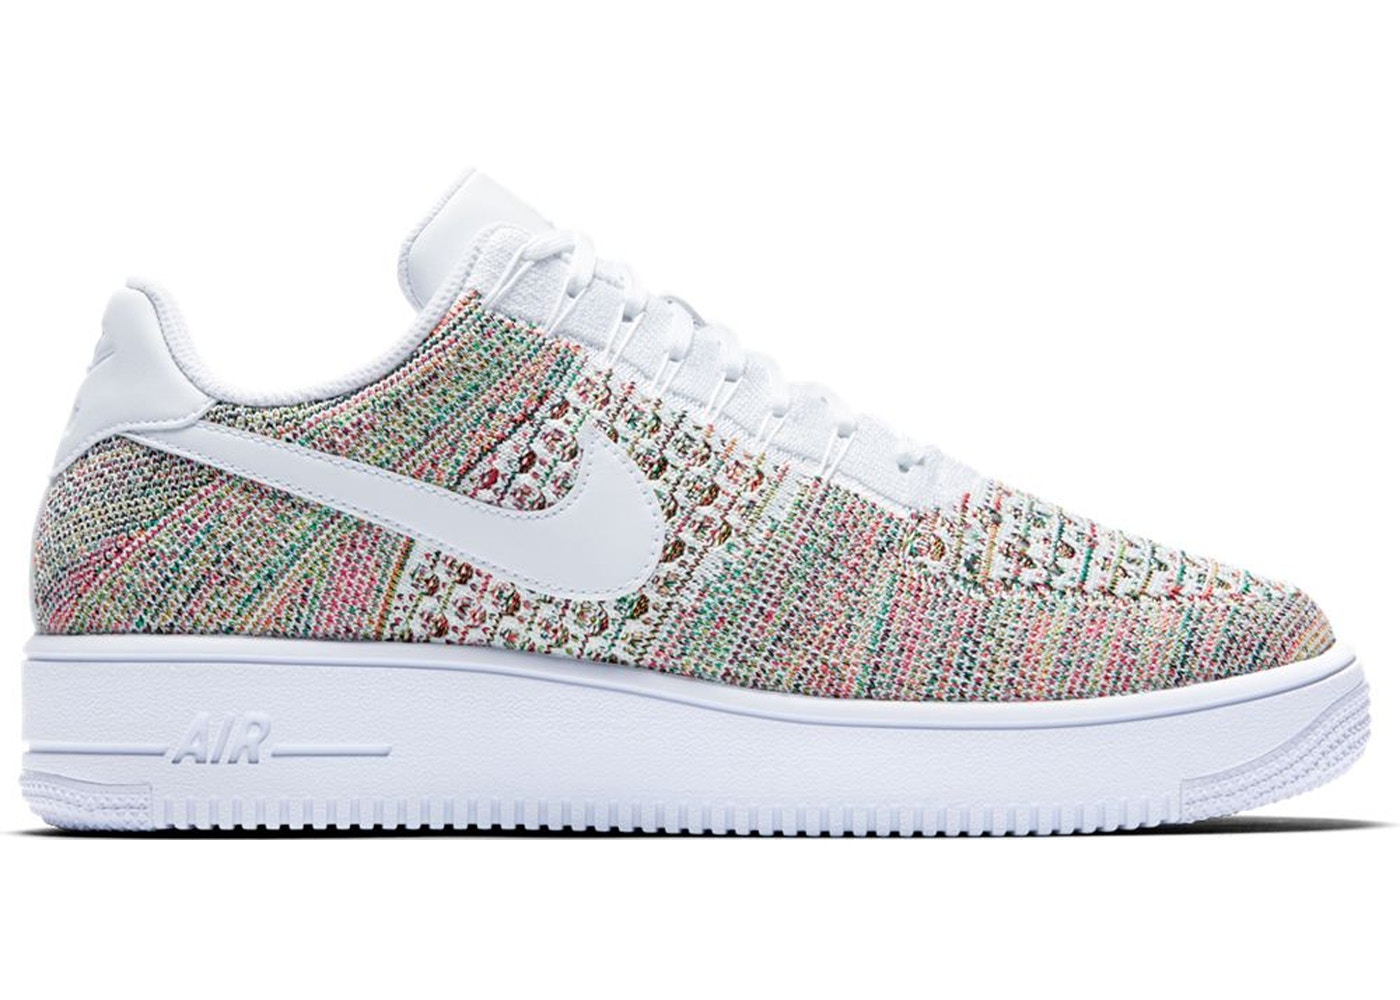 Air Force 1 Ultra Flyknit Low Multi Color